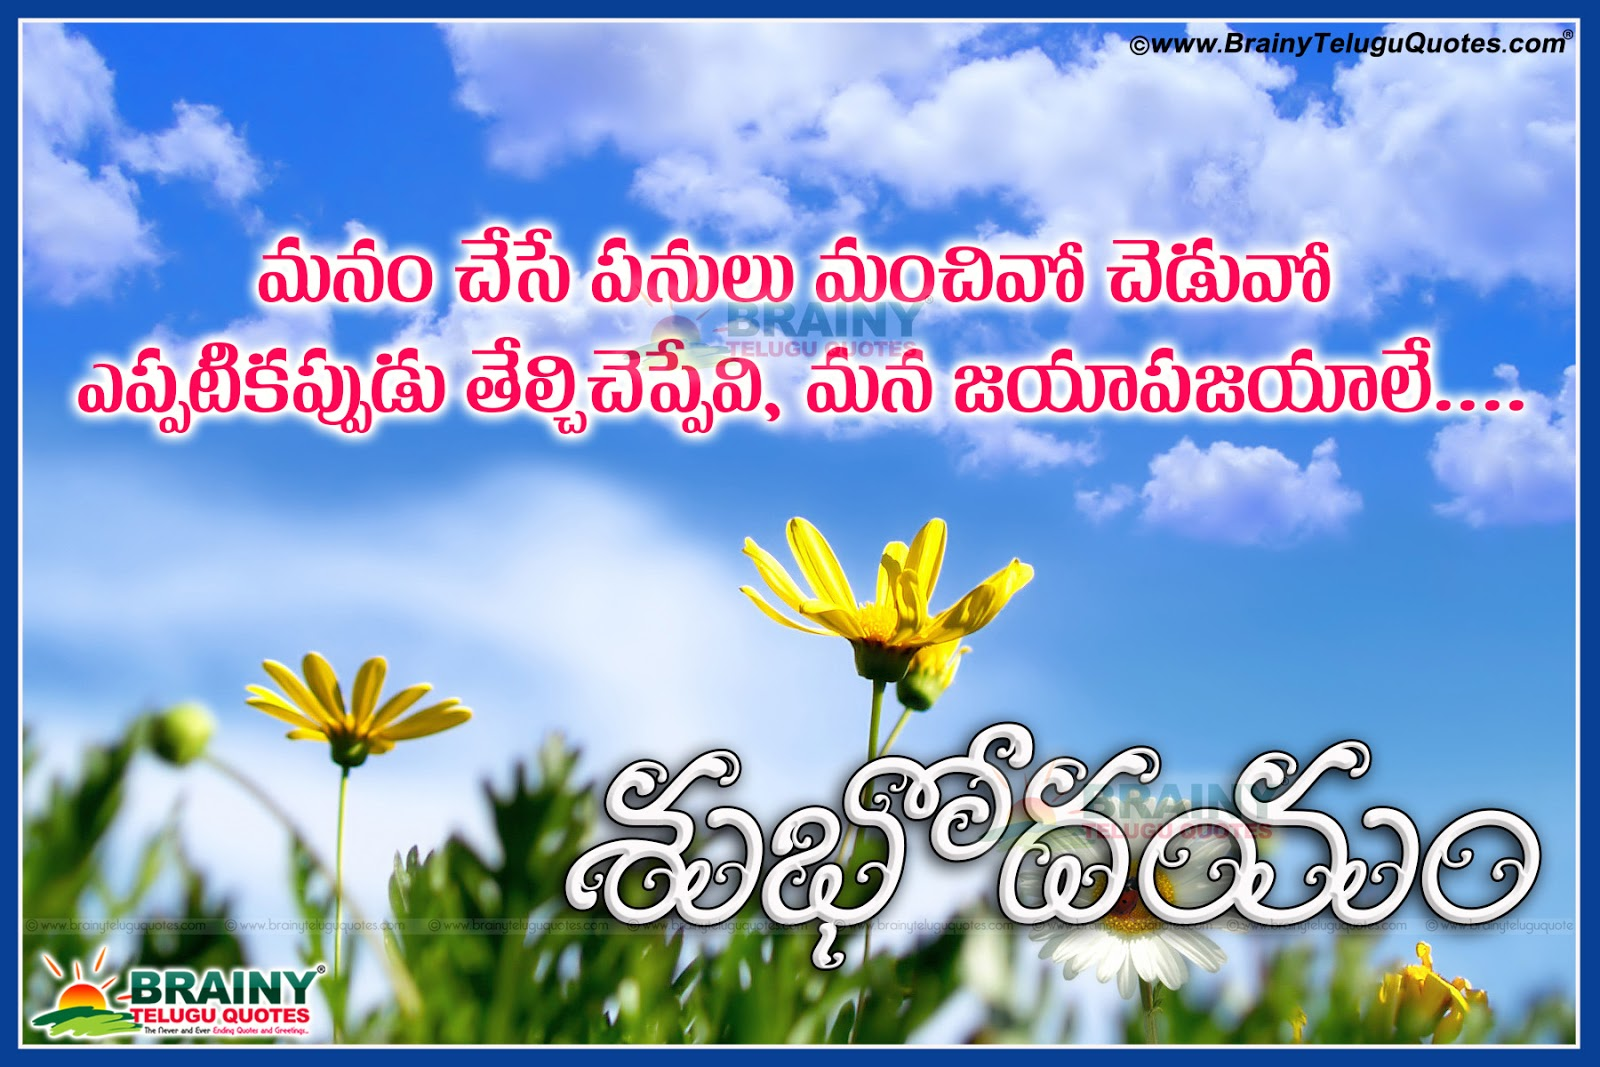 telugu good morning messages quotes about success